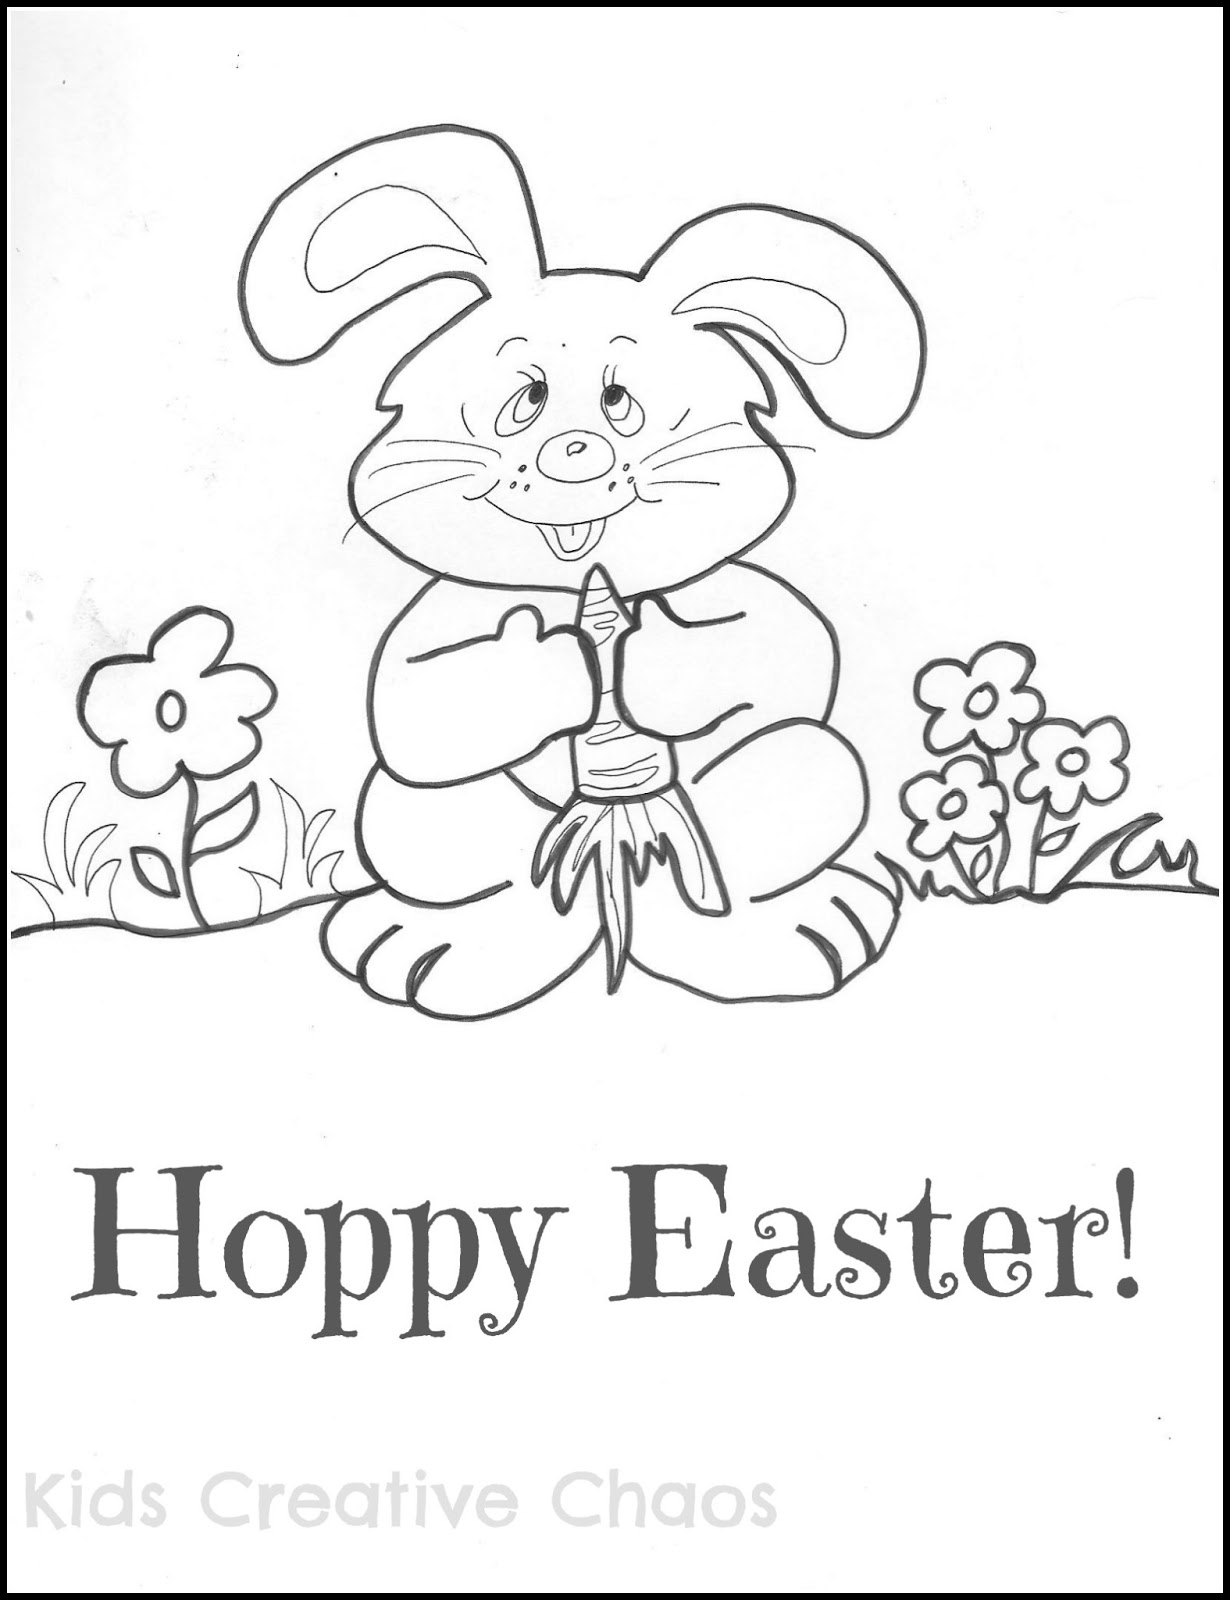 Easter Bunny Coloring Page Printable for Kids - Kids Creative Chaos